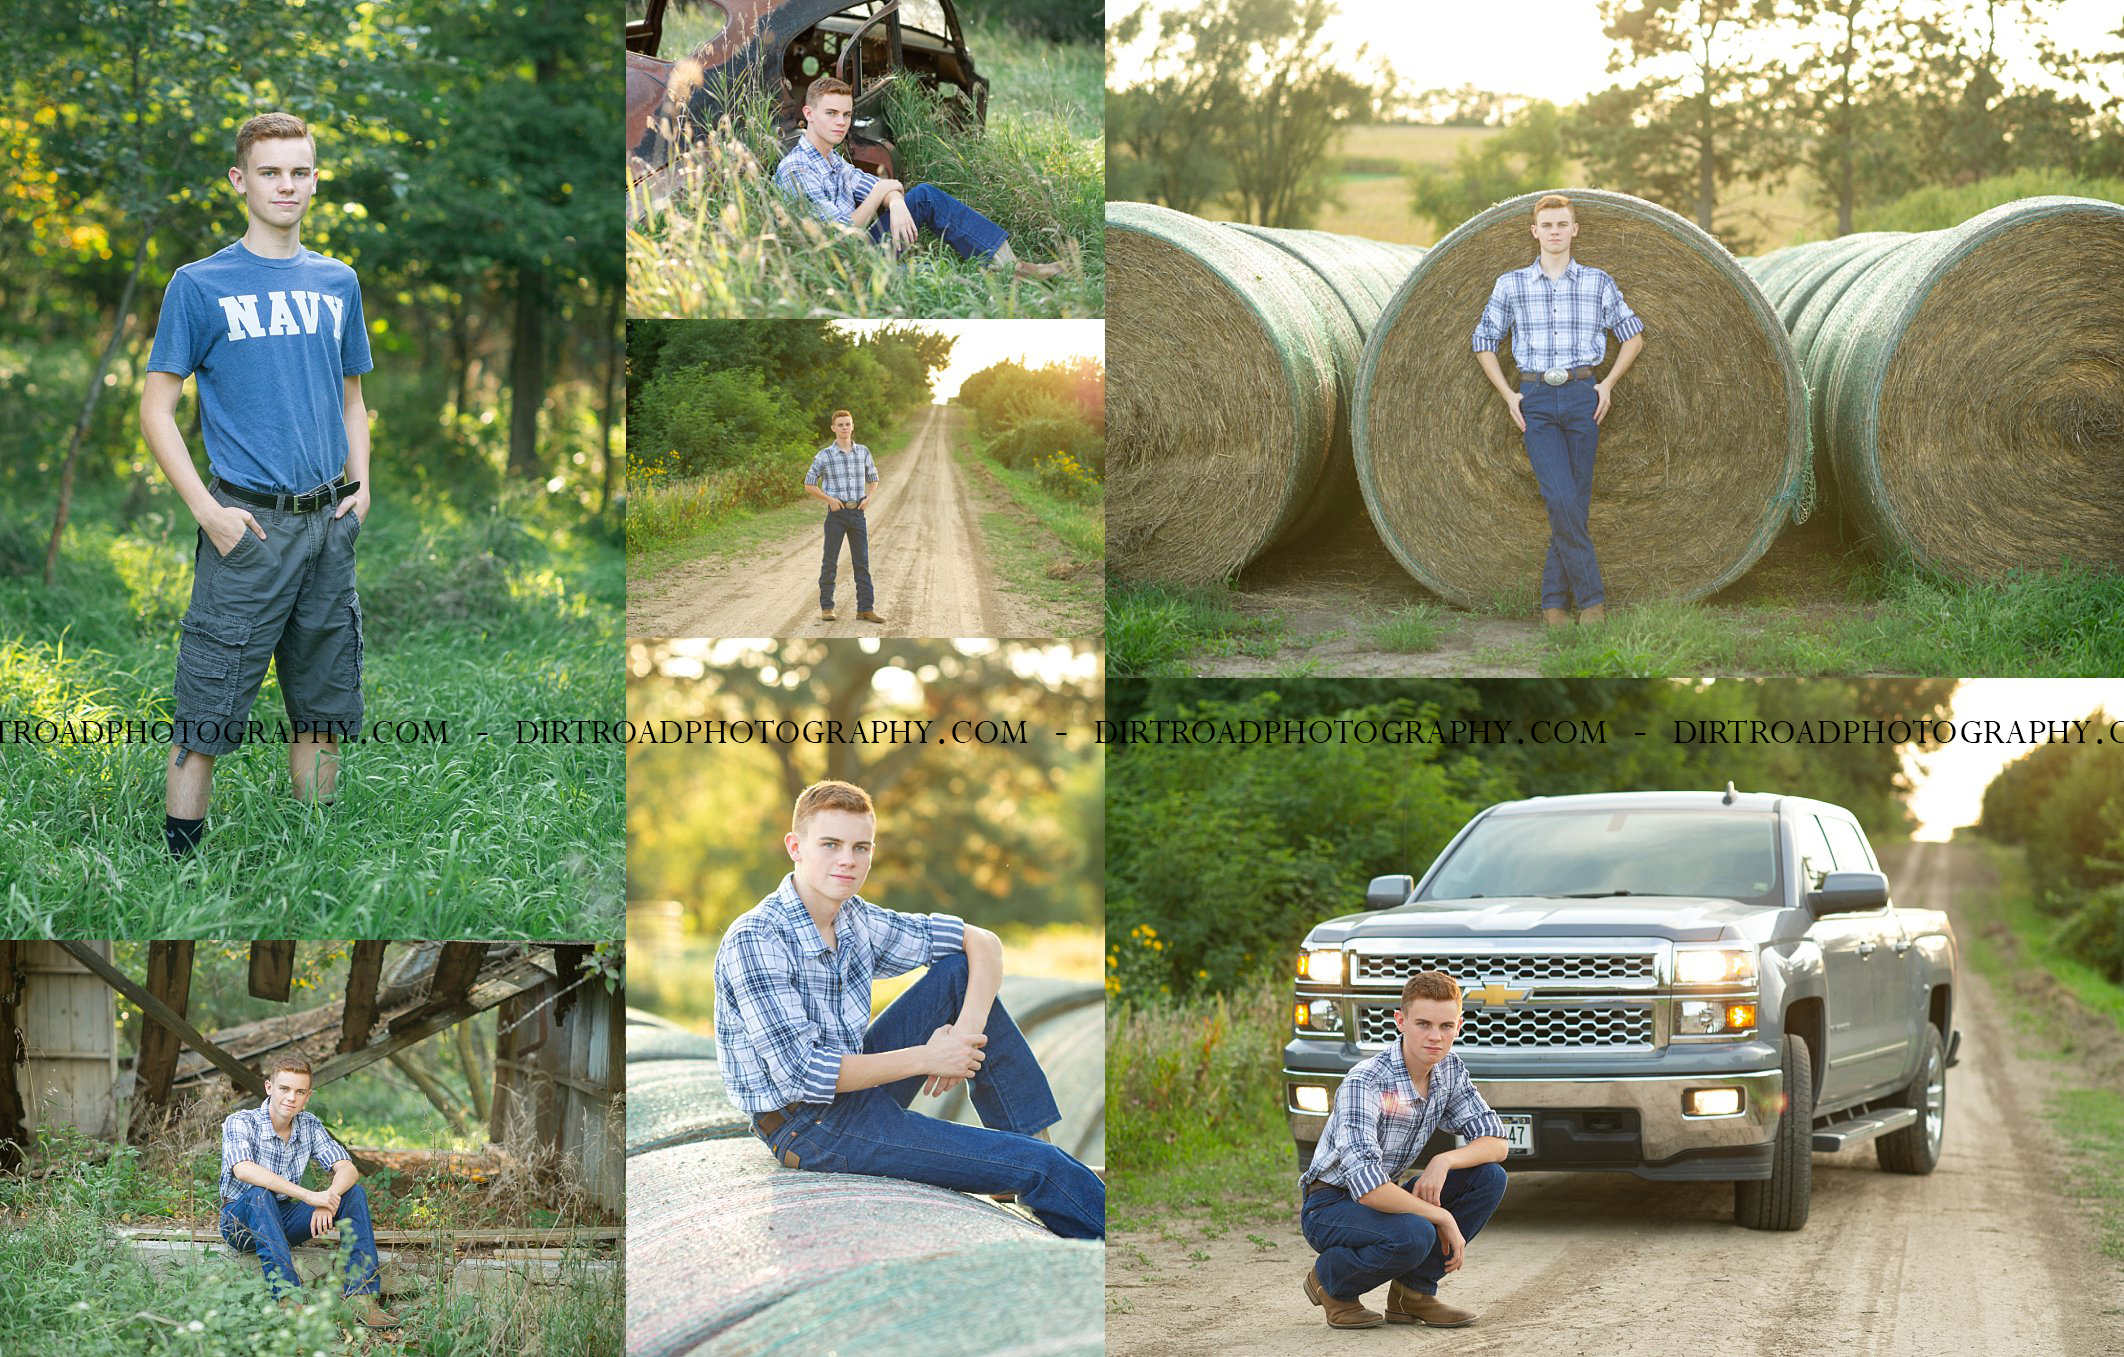 images-of-high-school-senior-boy-chase-wittenhagen-from-pius-x-high-school-class-of-2019-lincoln-nebraska-photos-dirt-road-photography-southeast-nebraska-saline-county-kelsey-homolka-nerud-rural-farm-dorchester-haybales-sunset-trees-jeans-cowboy-boots-plaid-button-up-shirt-wranglers-red-hair-abandoned-old-building-chevy-truck-navy-shirt-old-rusty-car-graduation-yearbook-pictures